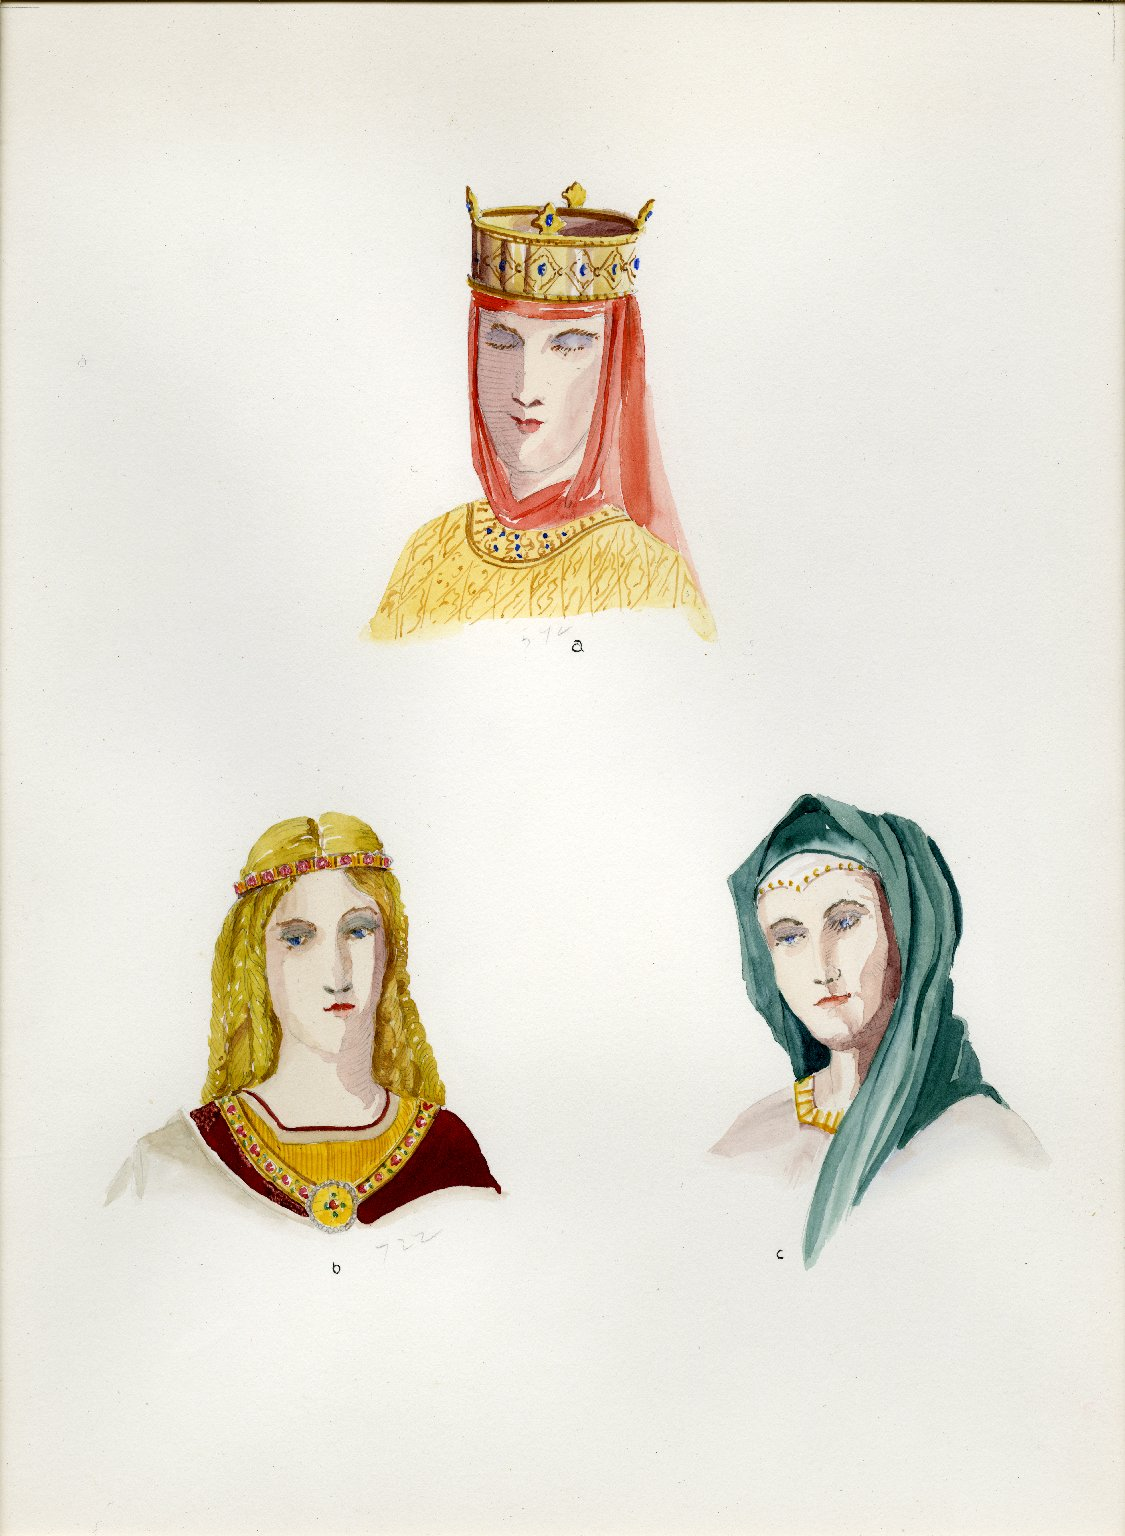 Plate XIV: Dark and Early Middle Ages headdress, coiffure, headdress